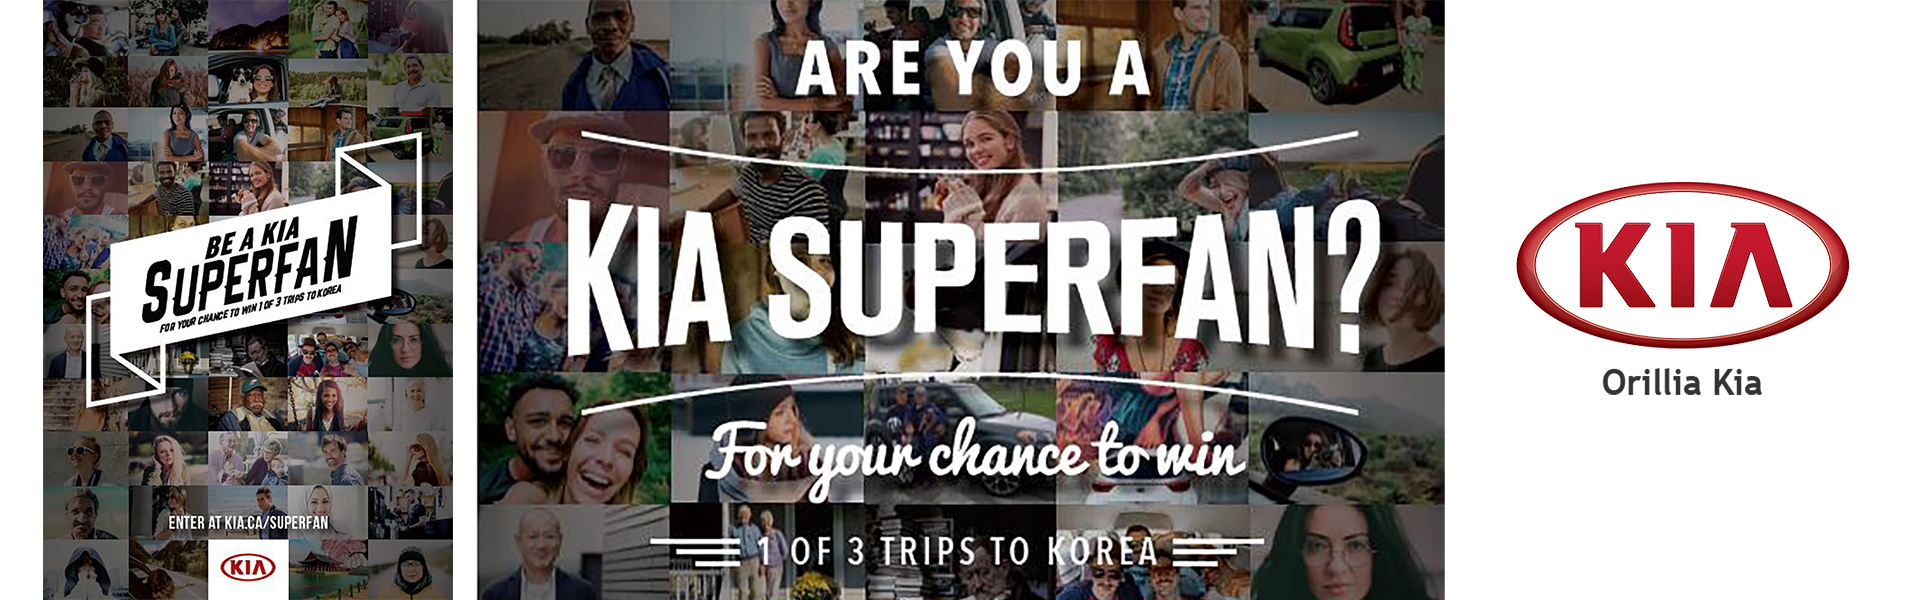 Kia Superfan Contest